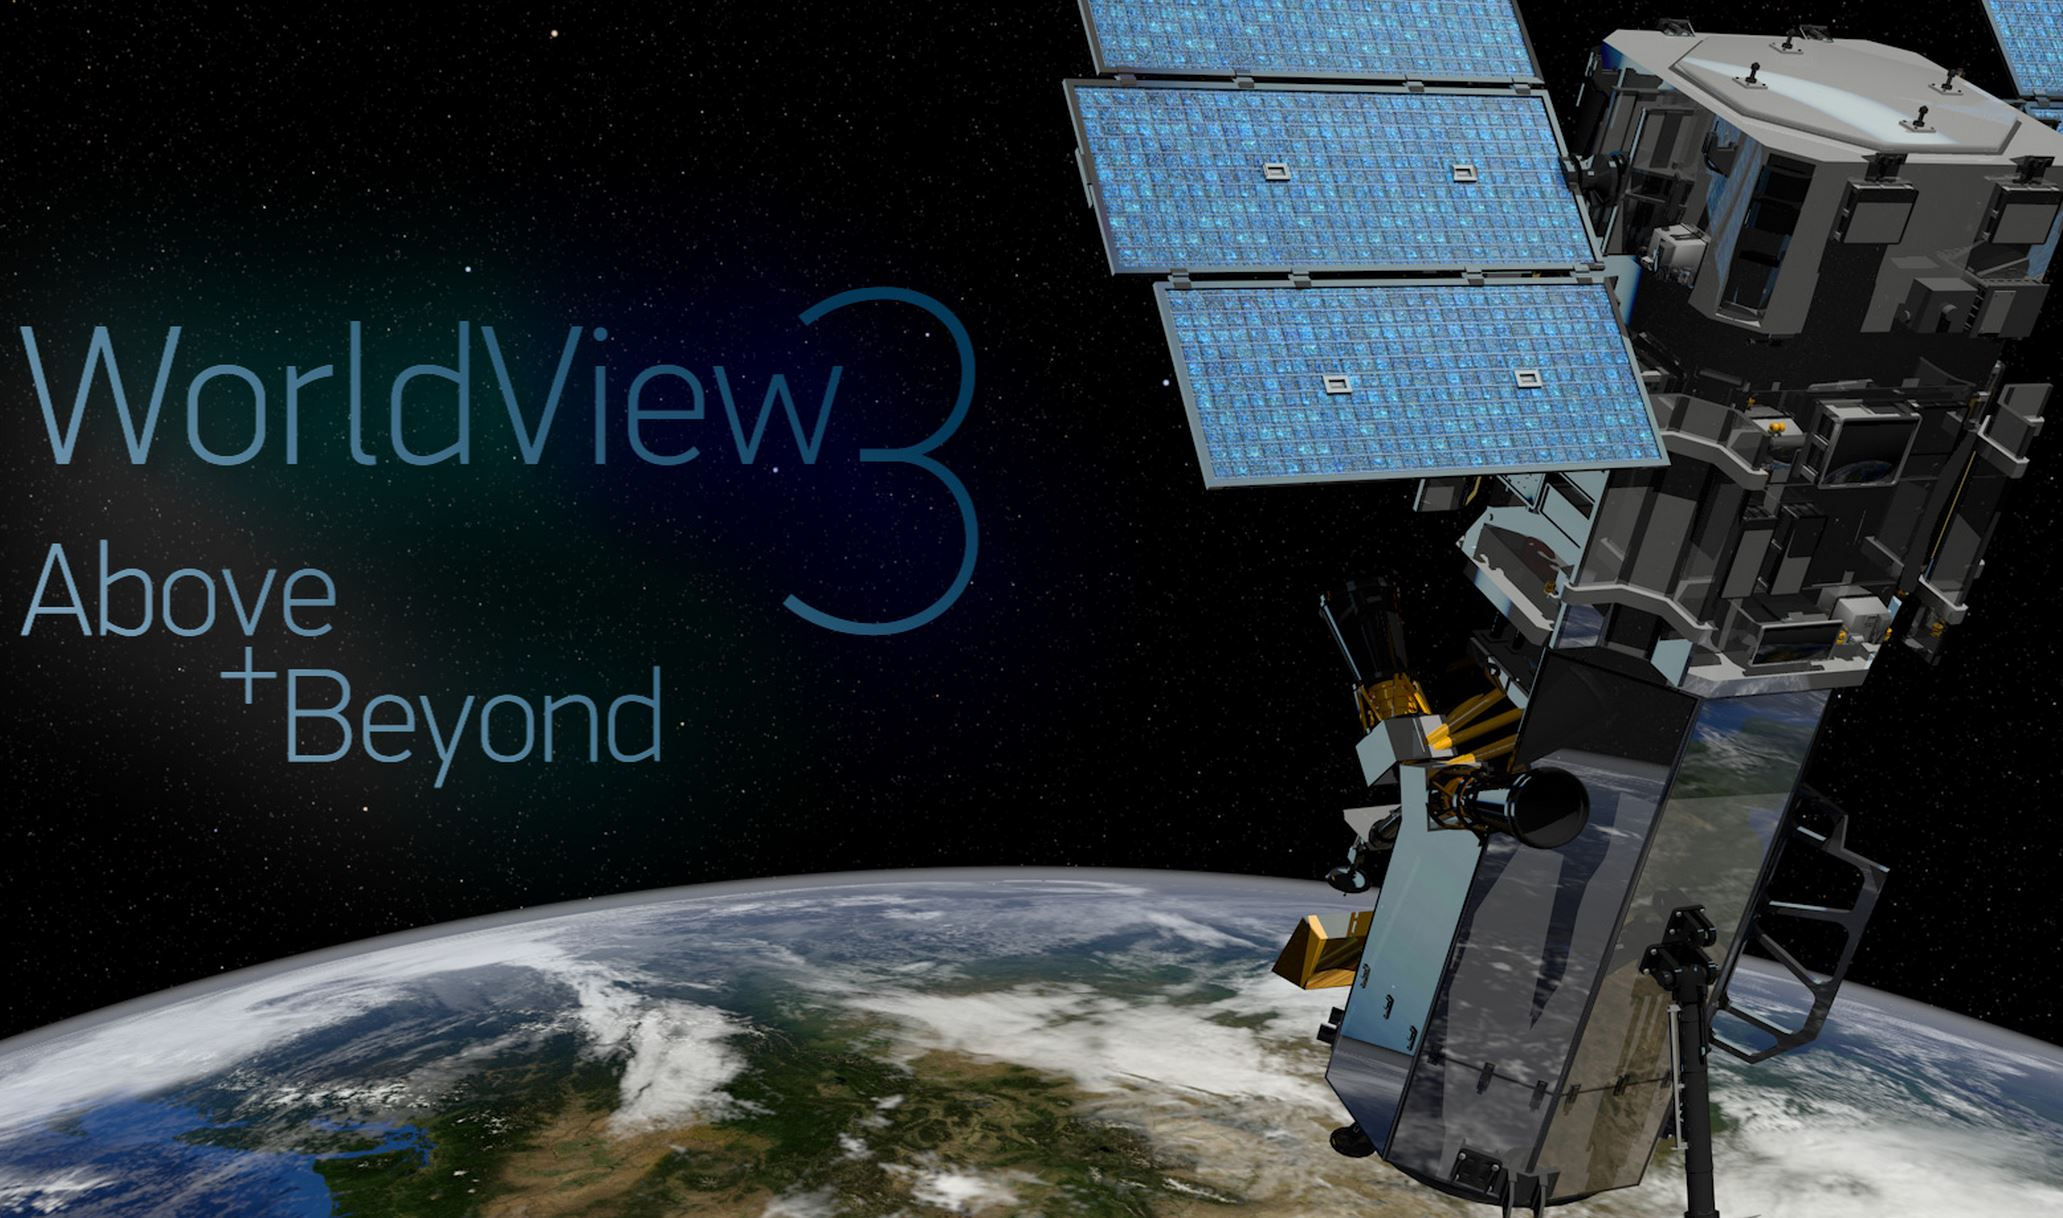 WorldView 3